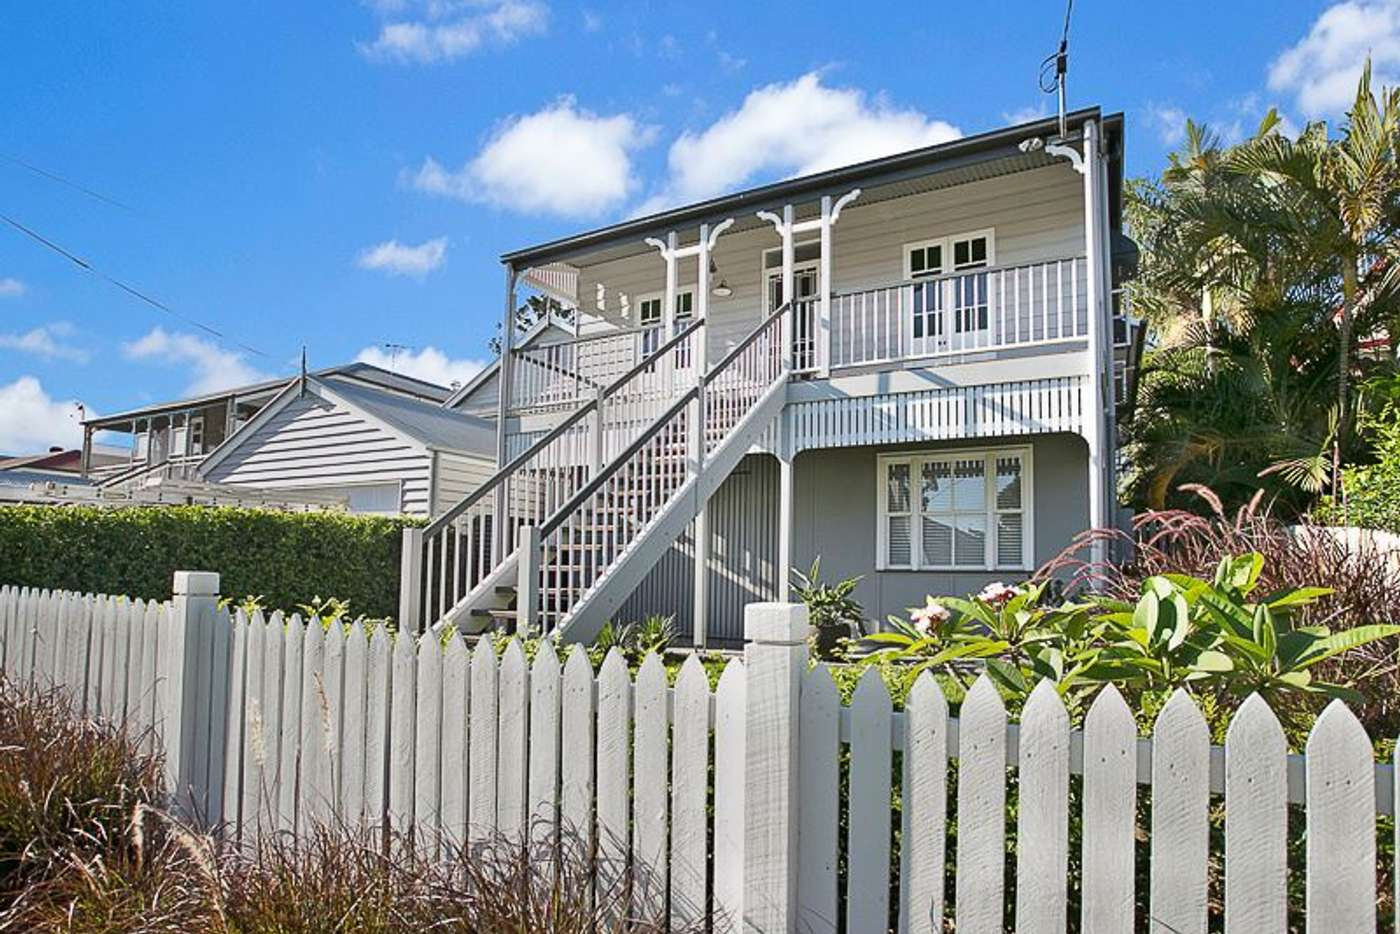 Main view of Homely house listing, 11 Merry Street, Bulimba QLD 4171